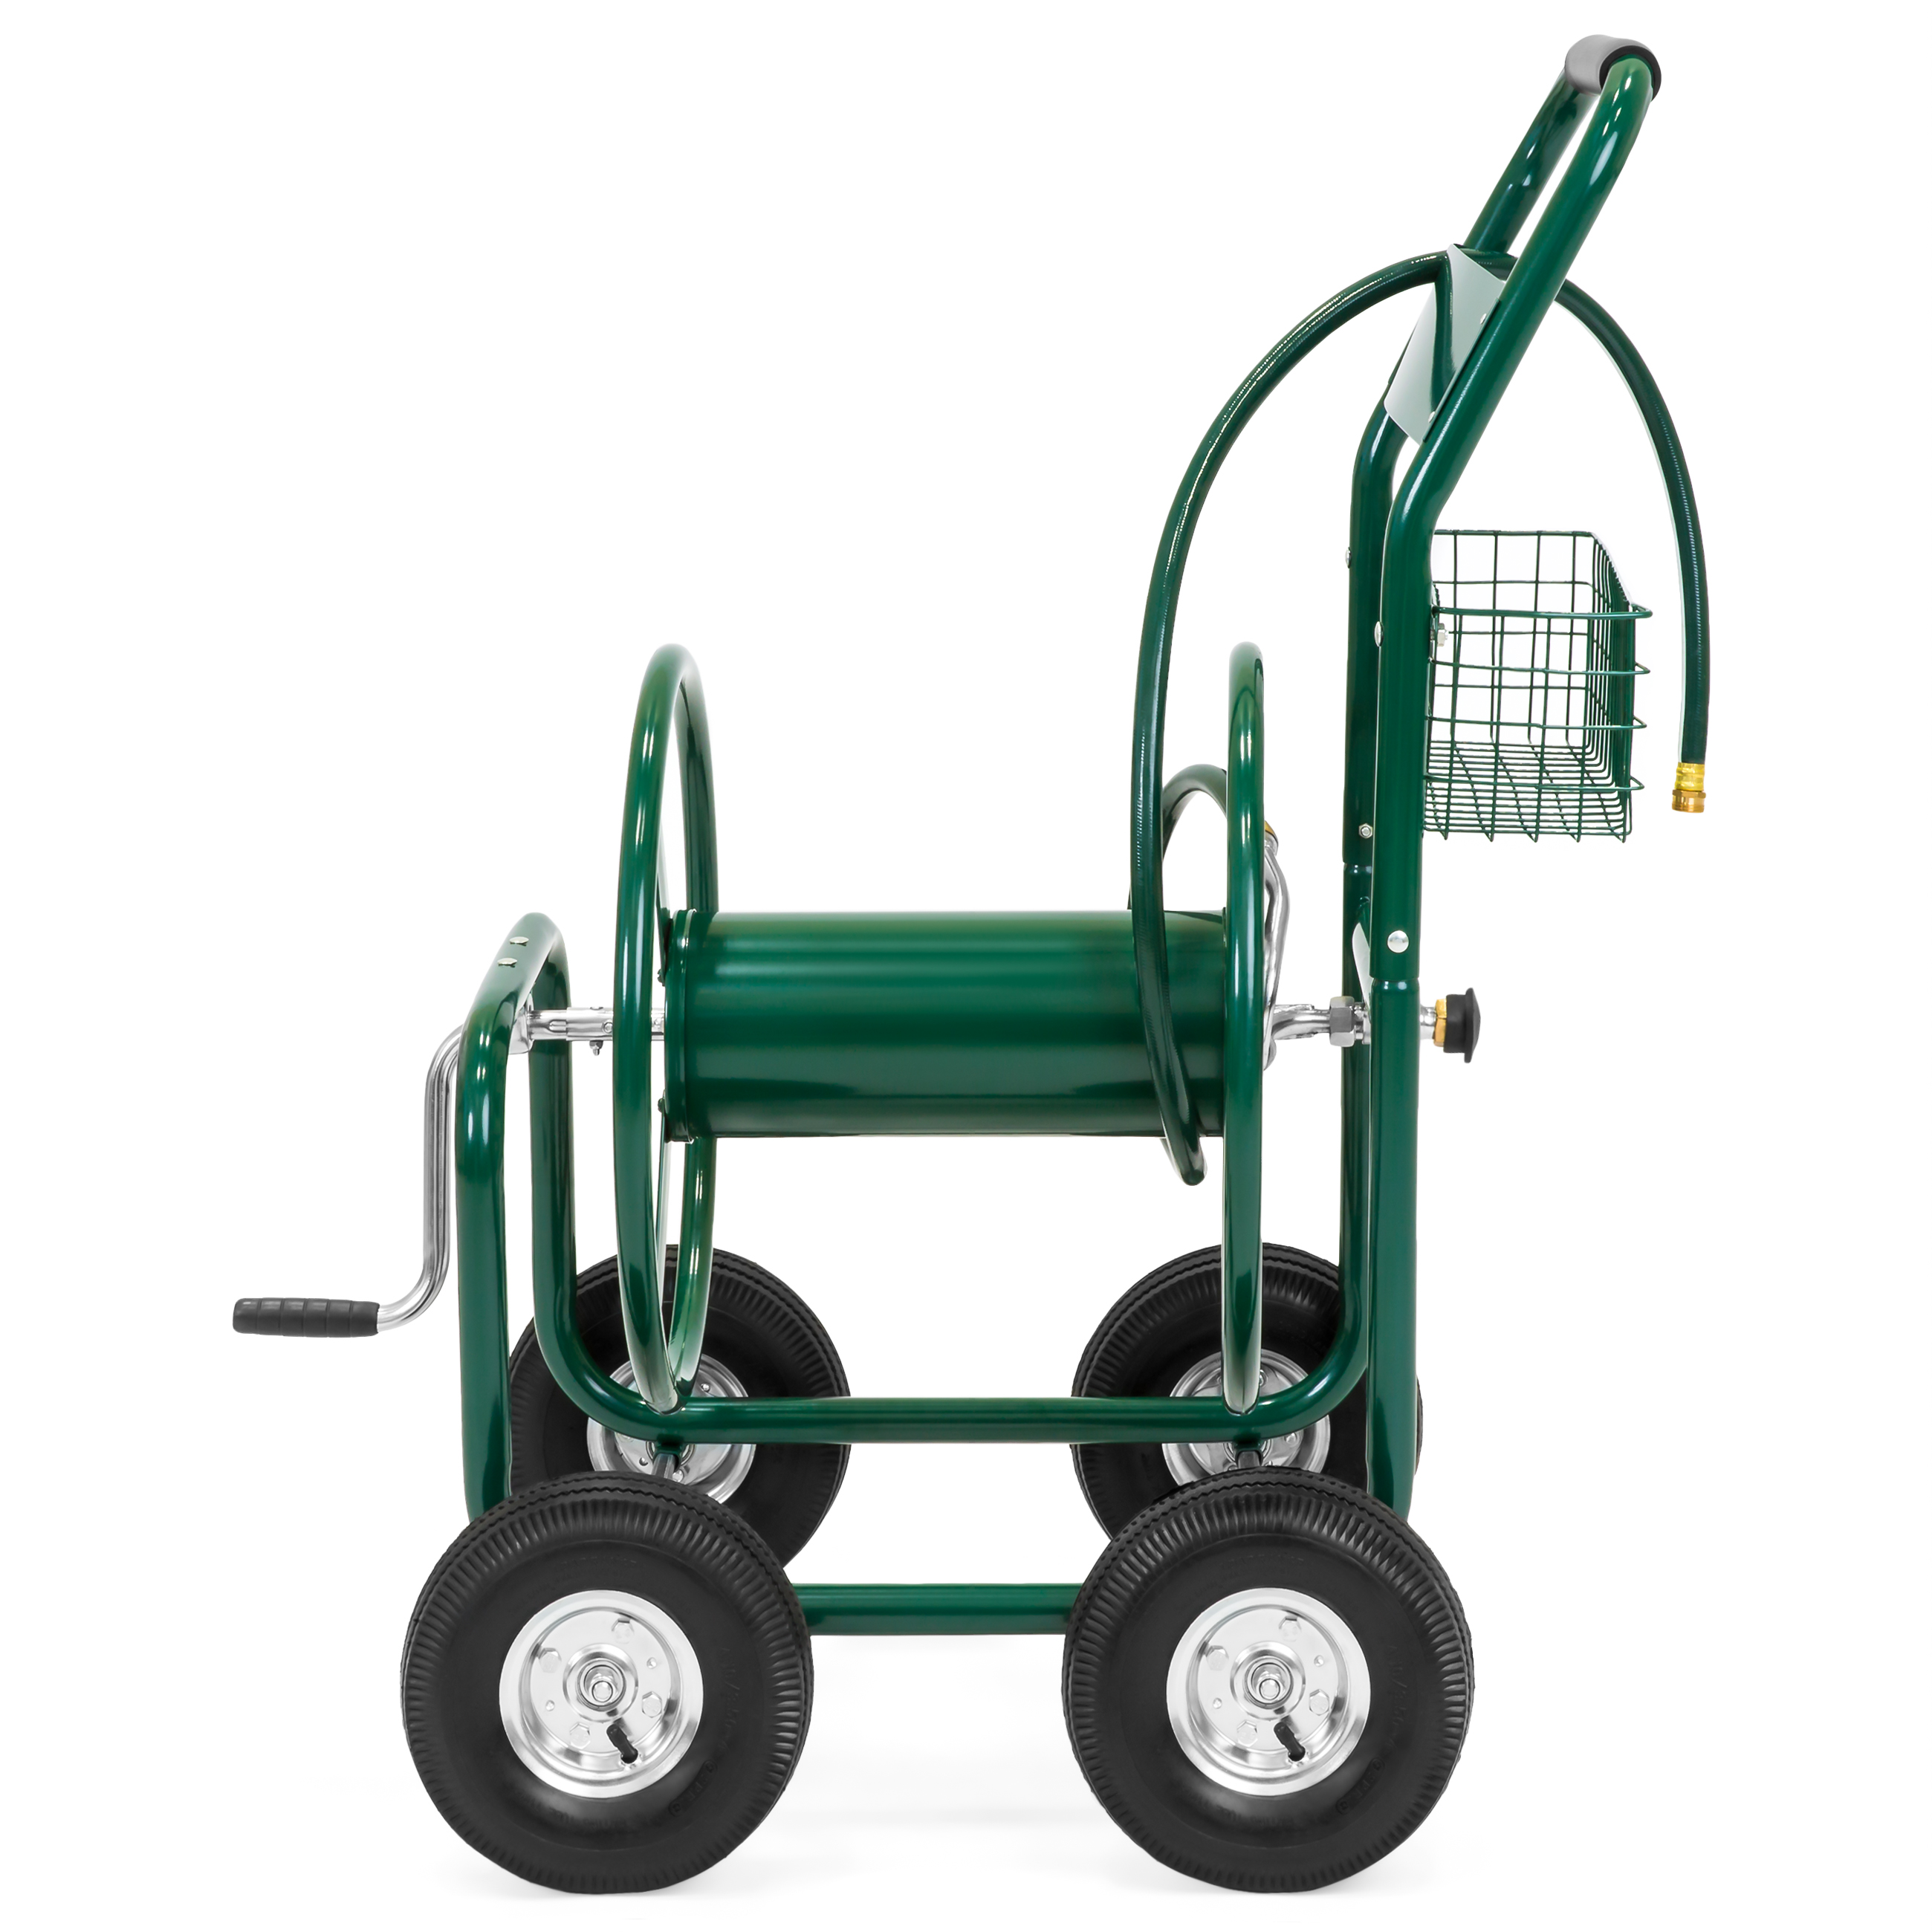 best choice products 300ft water hose reel cart w basket for outdoor garden heavy duty yard water planting green walmartcom - Garden Hose Reel Cart